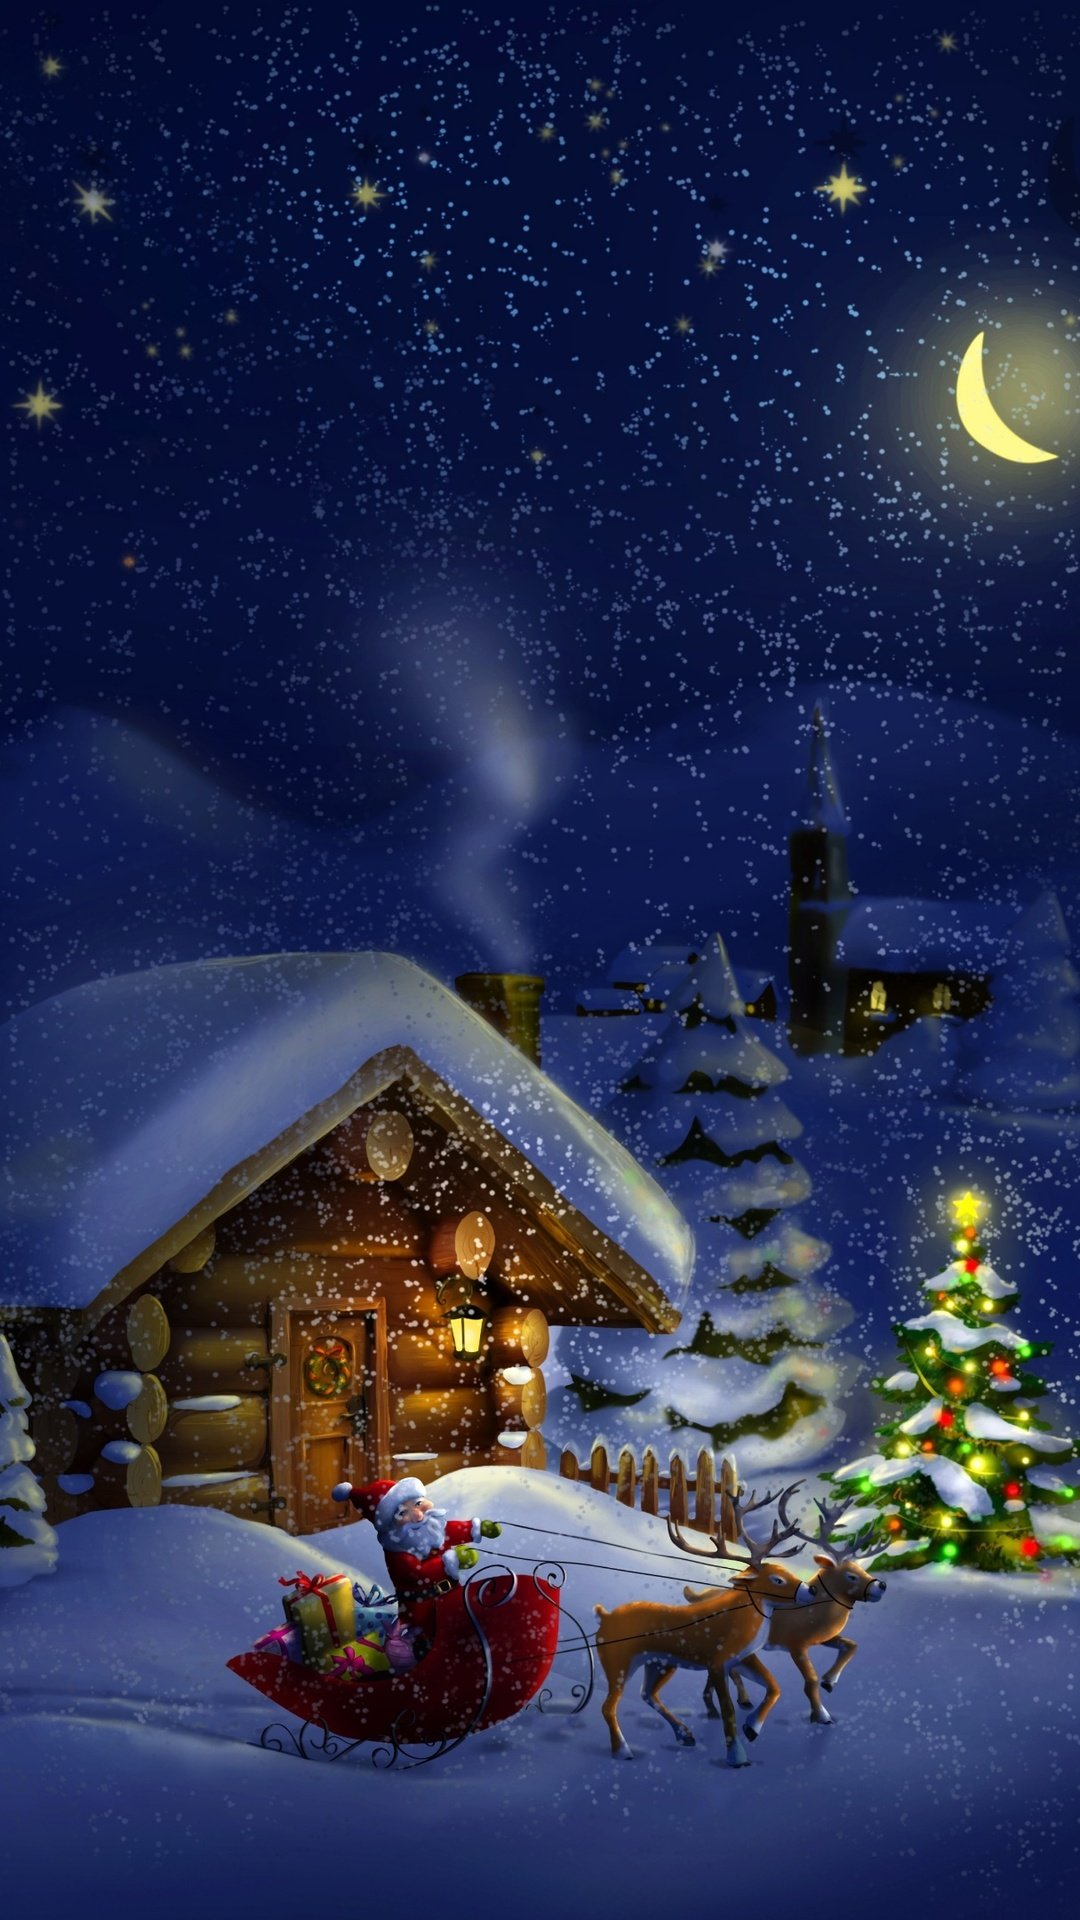 Christmas night with Santa 4K Ultra HD wallpaper 4k WallpaperNet 1080x1920